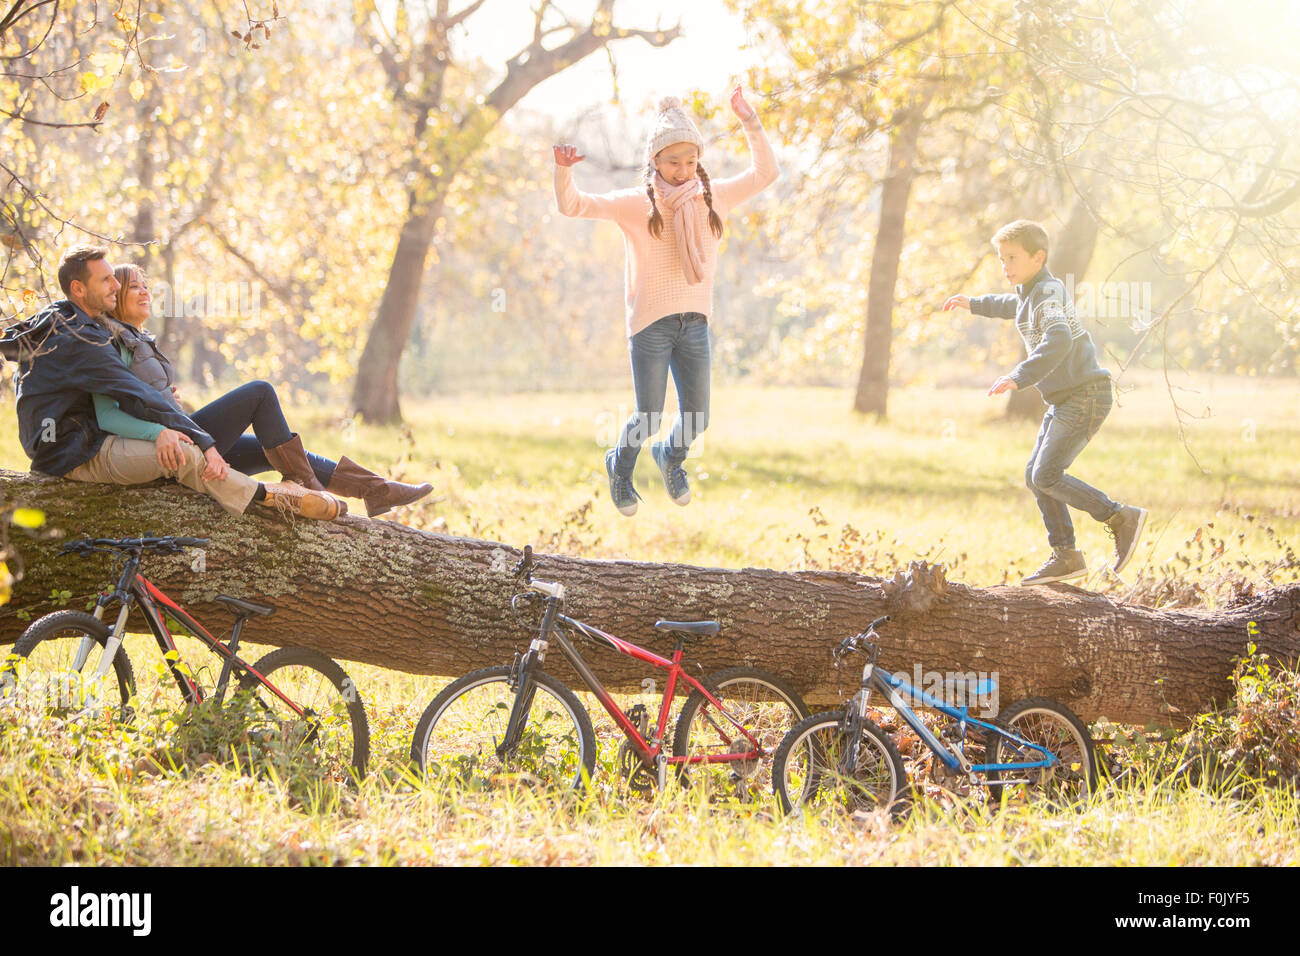 Family playing on fallen log in autumn woods Stock Photo